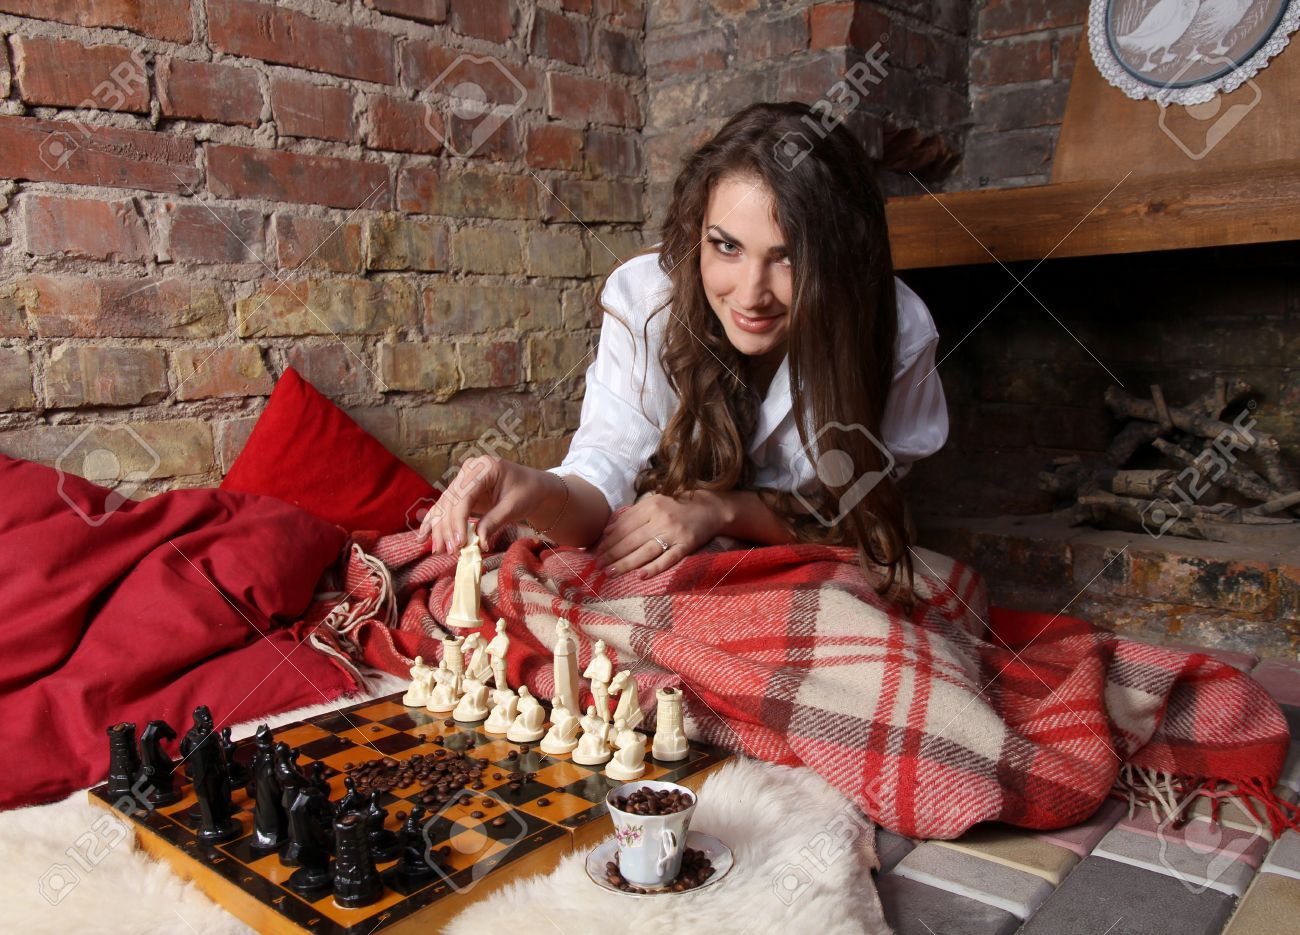 Girl Play Chess By The Fireplace Stock Photo, Picture And Royalty ...